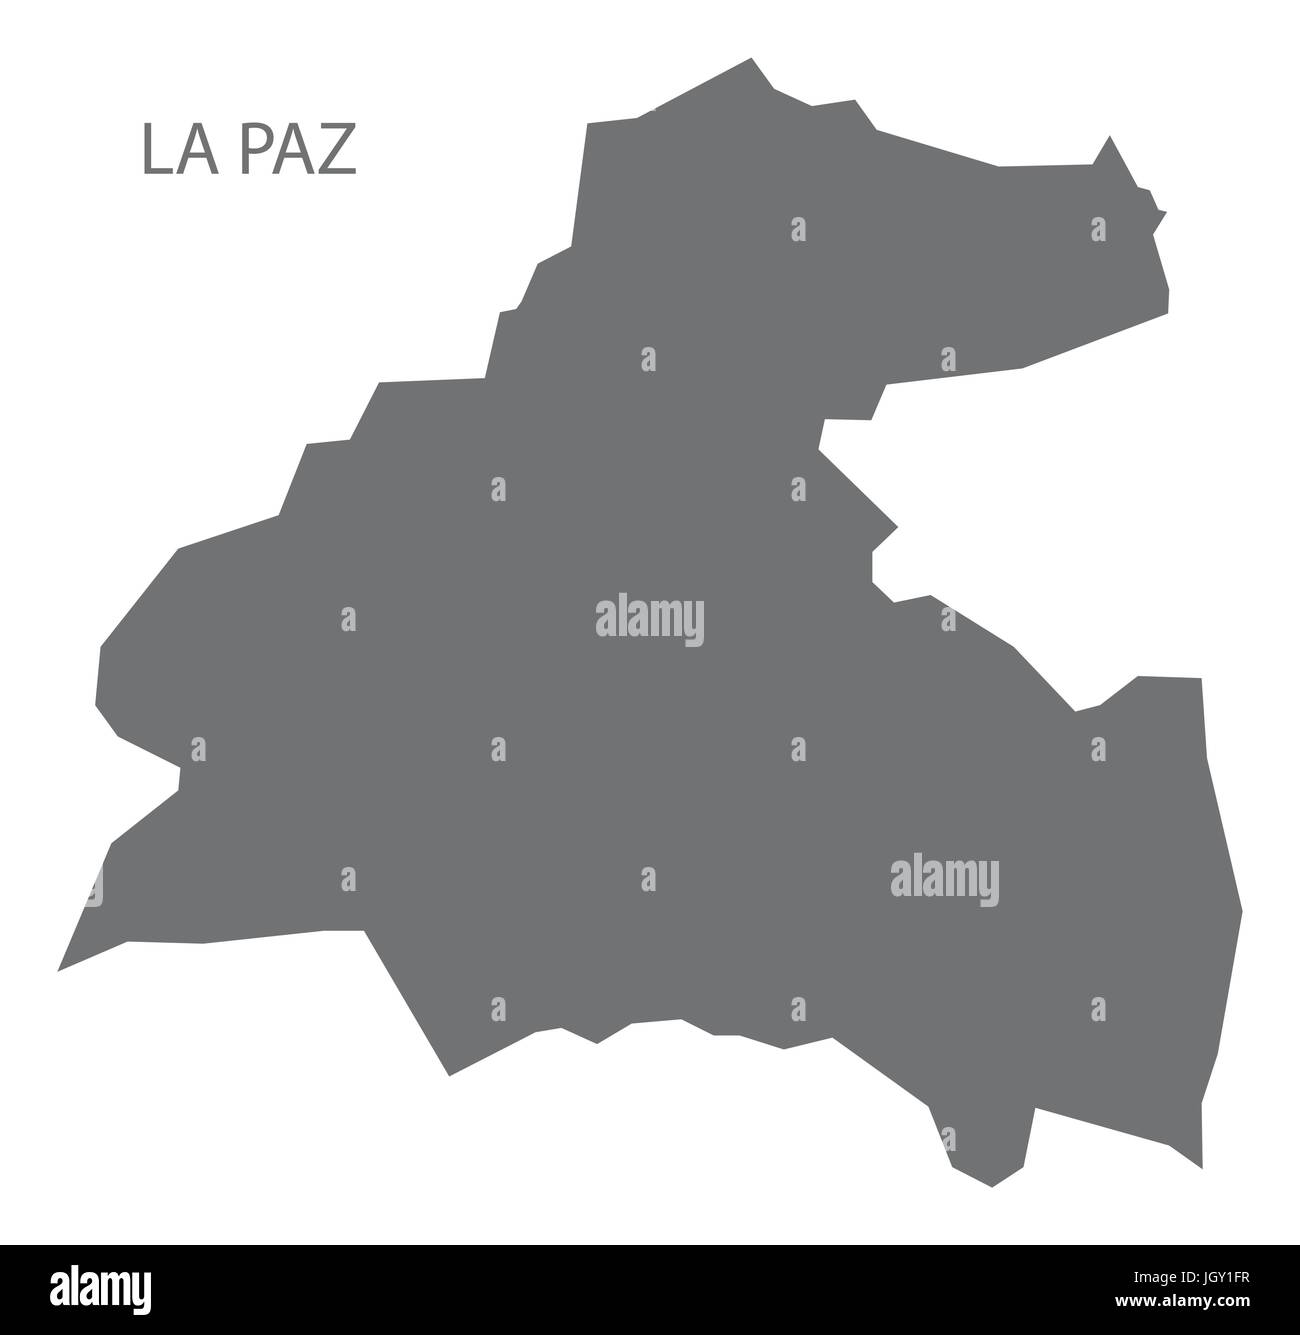 La Paz Honduras Map La Paz Honduras map grey illustration silhouette Stock Vector Art